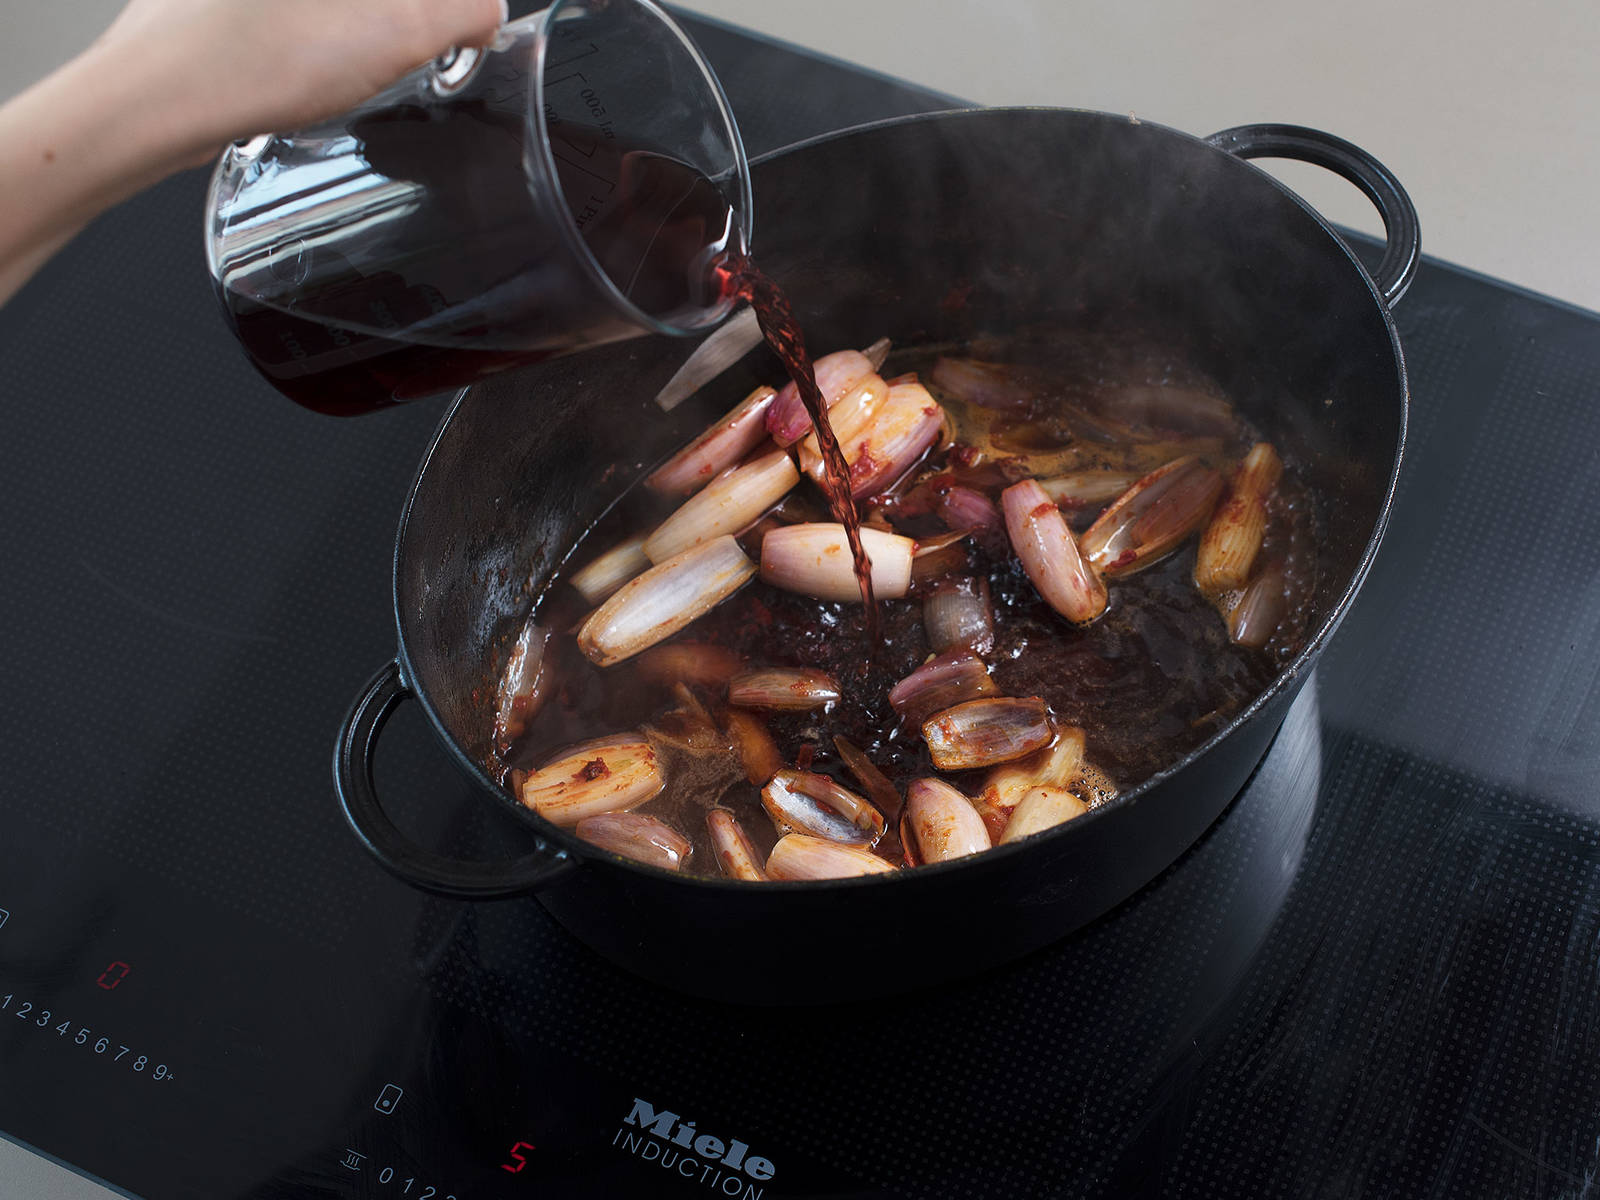 Add shallots, and sauté on medium-high heat for approx. 3 min., until translucent. Add tomato paste, and deglaze with red wine. Add meat back into pot and let simmer for approx. 10 min.